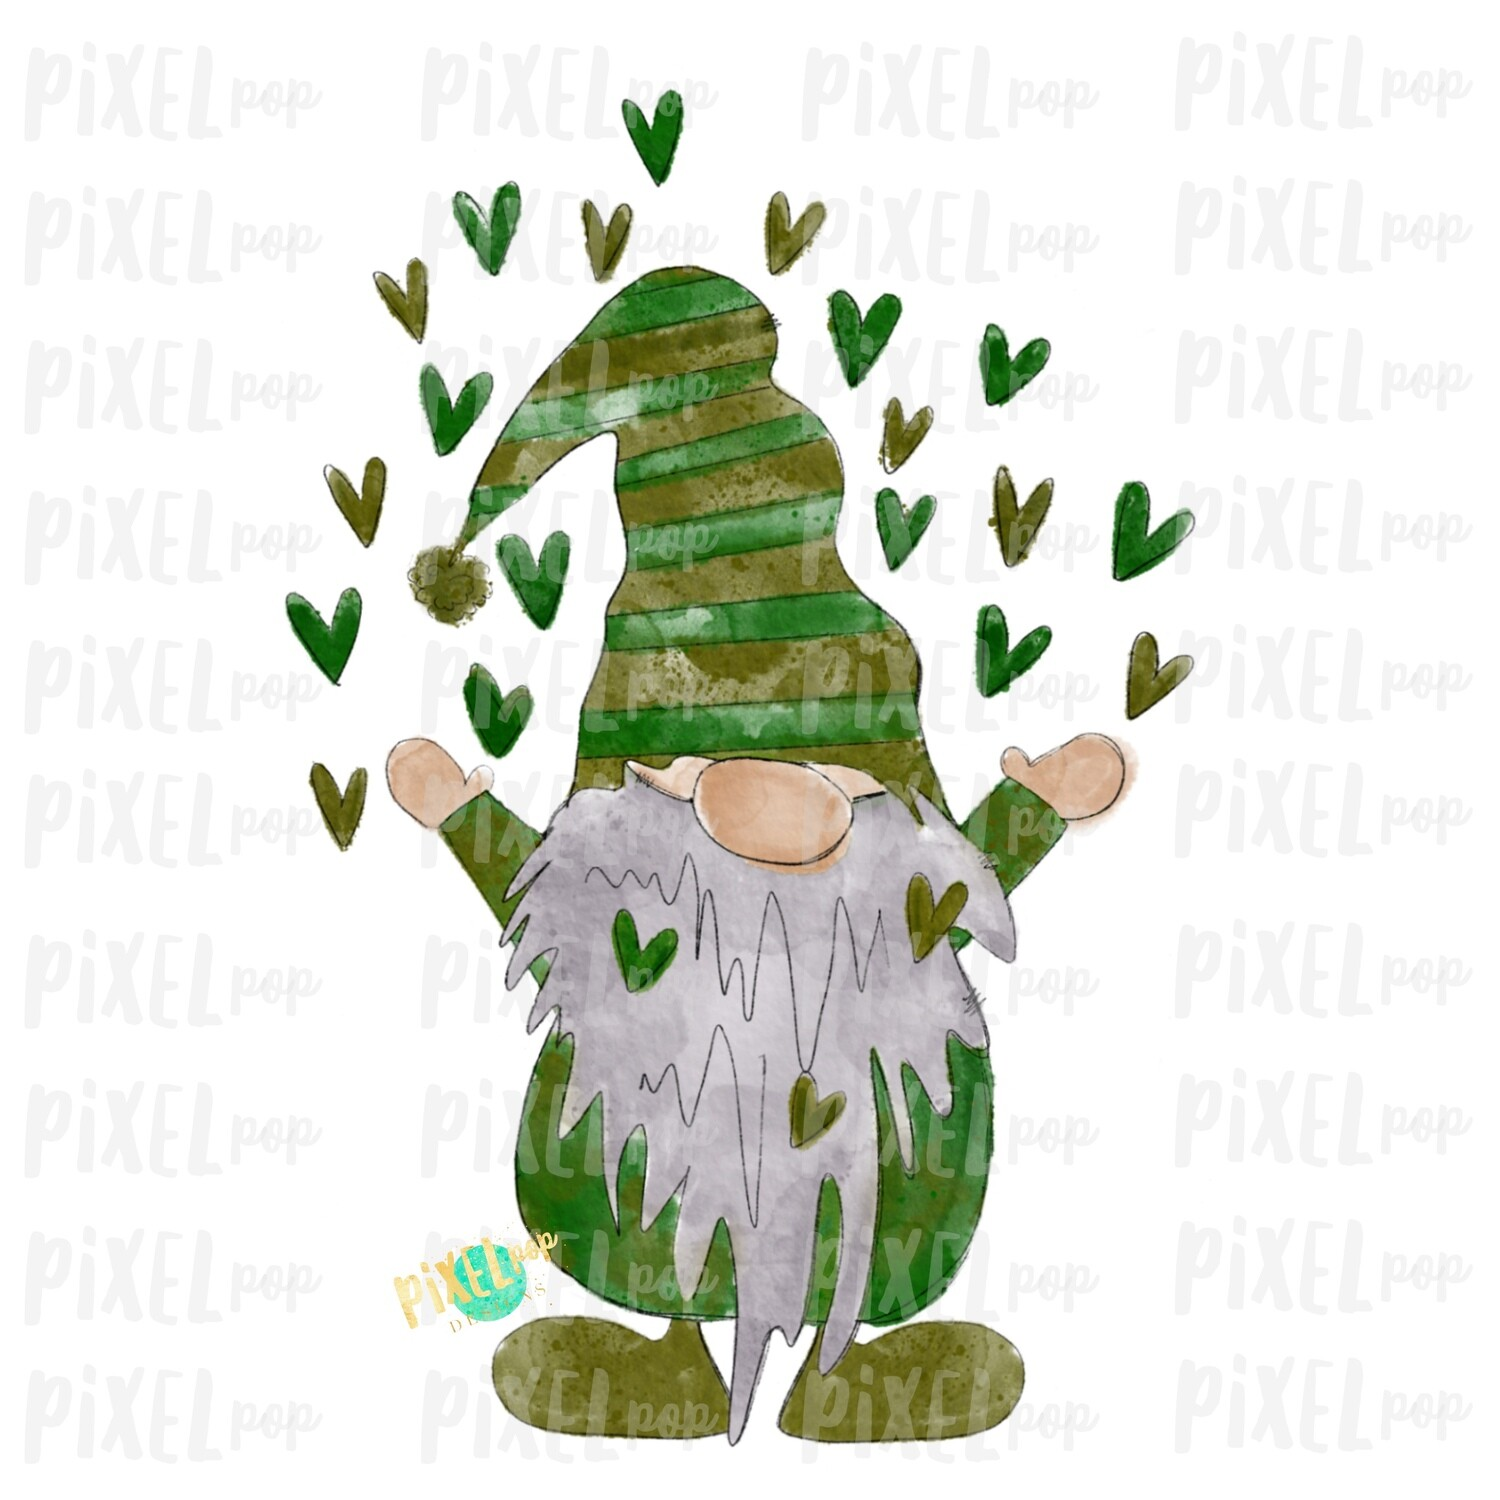 Valentine Heart Gnome Green Watercolor Sublimation PNG   Gnome Digital   Valentines Day Gnome   Valentine Gnome   Watercolor Gnome   Gnome